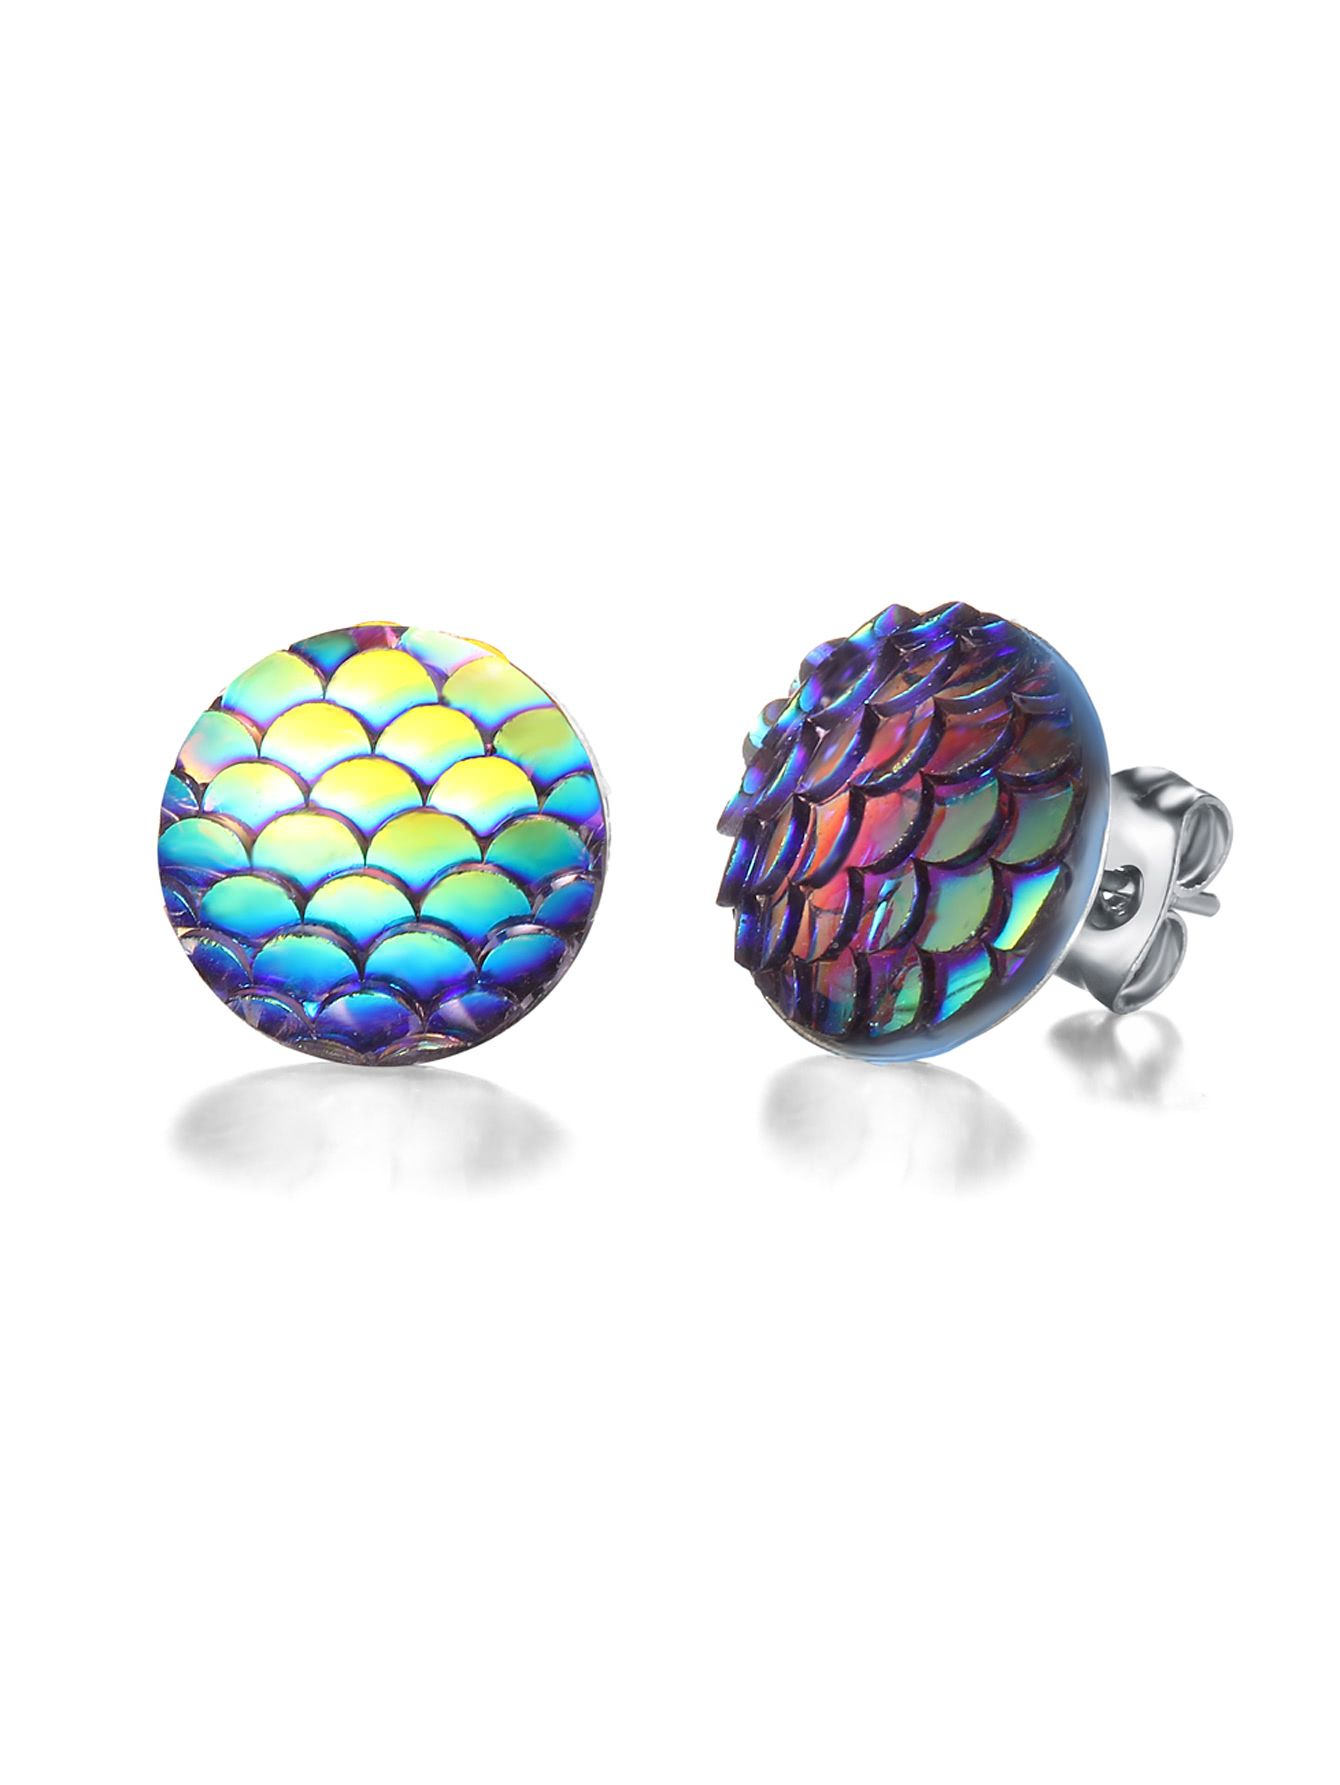 2418a837a6 Shop Ombre Scale Stud Earrings online. SheIn offers Ombre Scale Stud  Earrings & more to fit your fashionable needs.